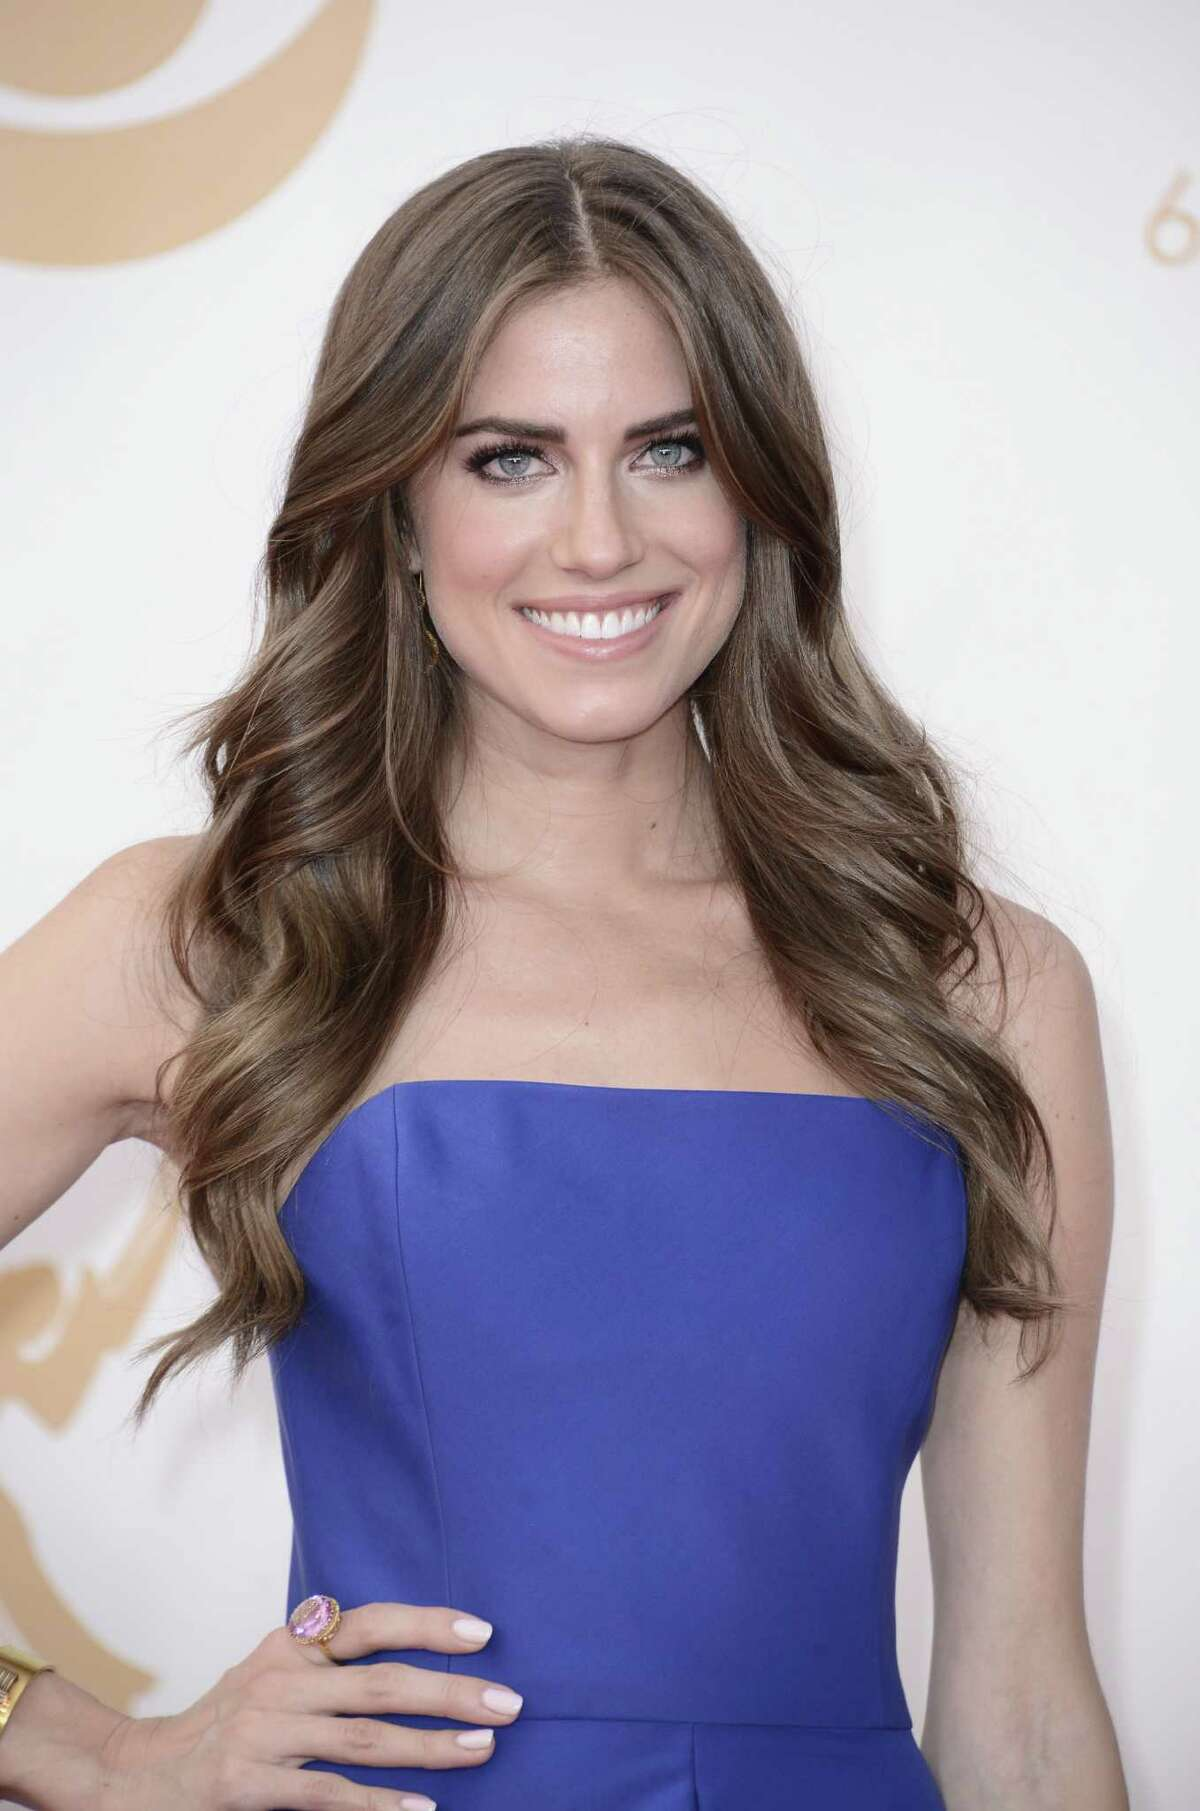 Allison Williams, wearing Ralph Lauren, arrives at the 65th Primetime Emmy Awards at Nokia Theatre on Sunday Sept. 22, 2013, in Los Angeles. (Photo by Dan Steinberg/Invision/AP)